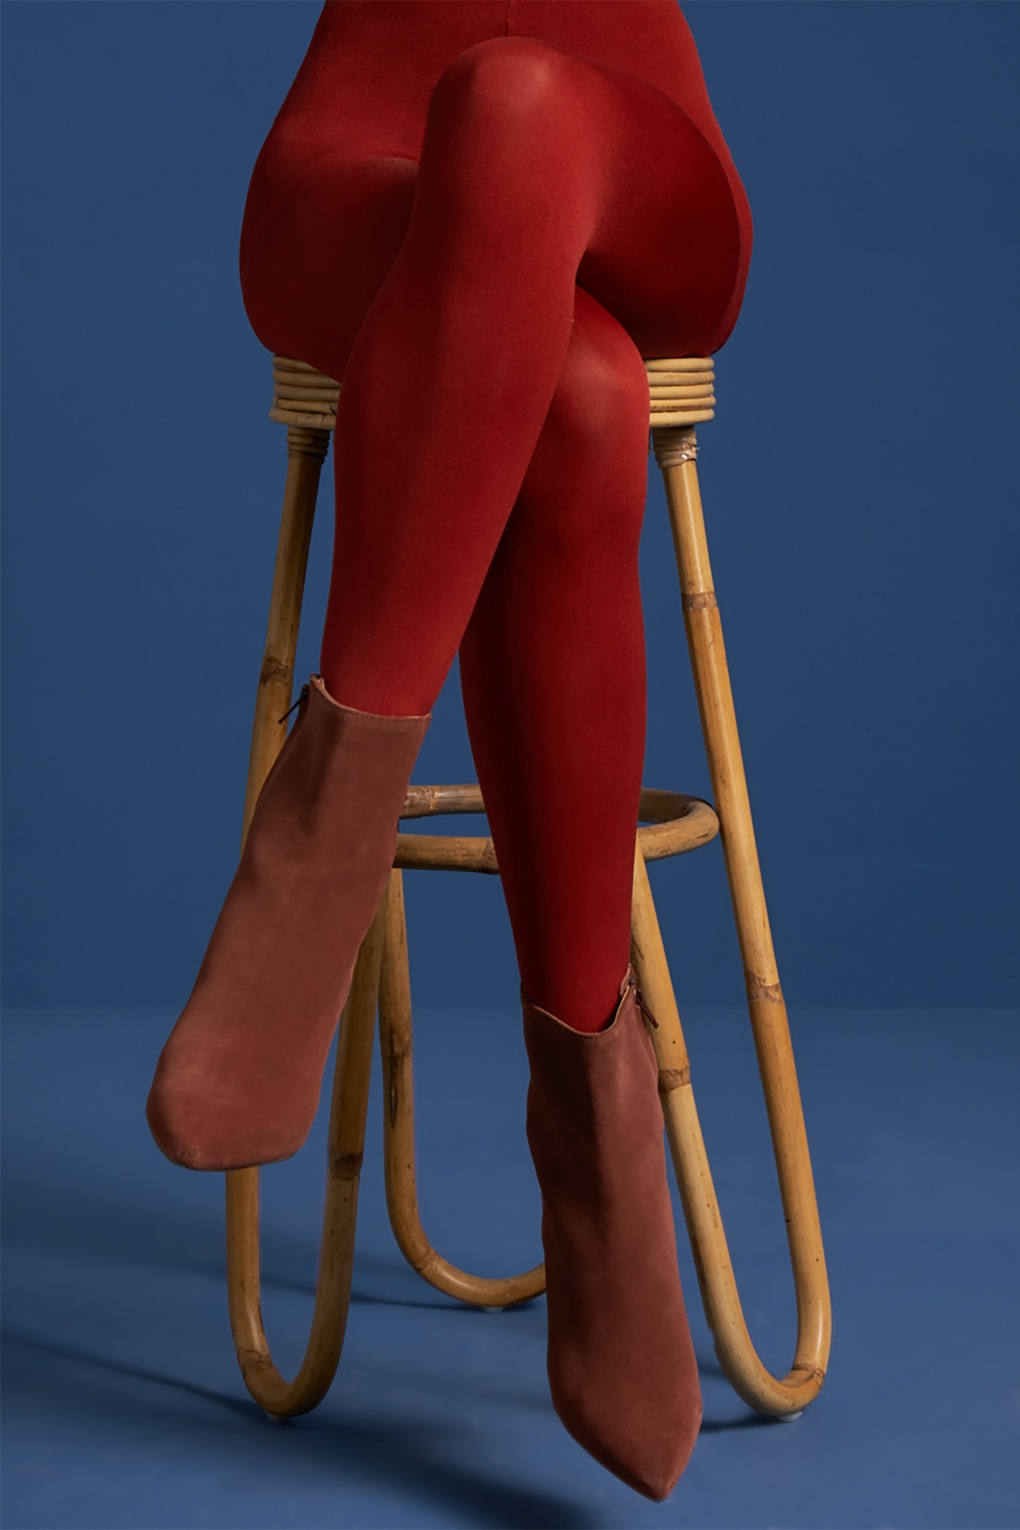 1960s Tights, Stockings, Panty Hose, Knee High Socks 60s Solid Tights in True Red £12.86 AT vintagedancer.com